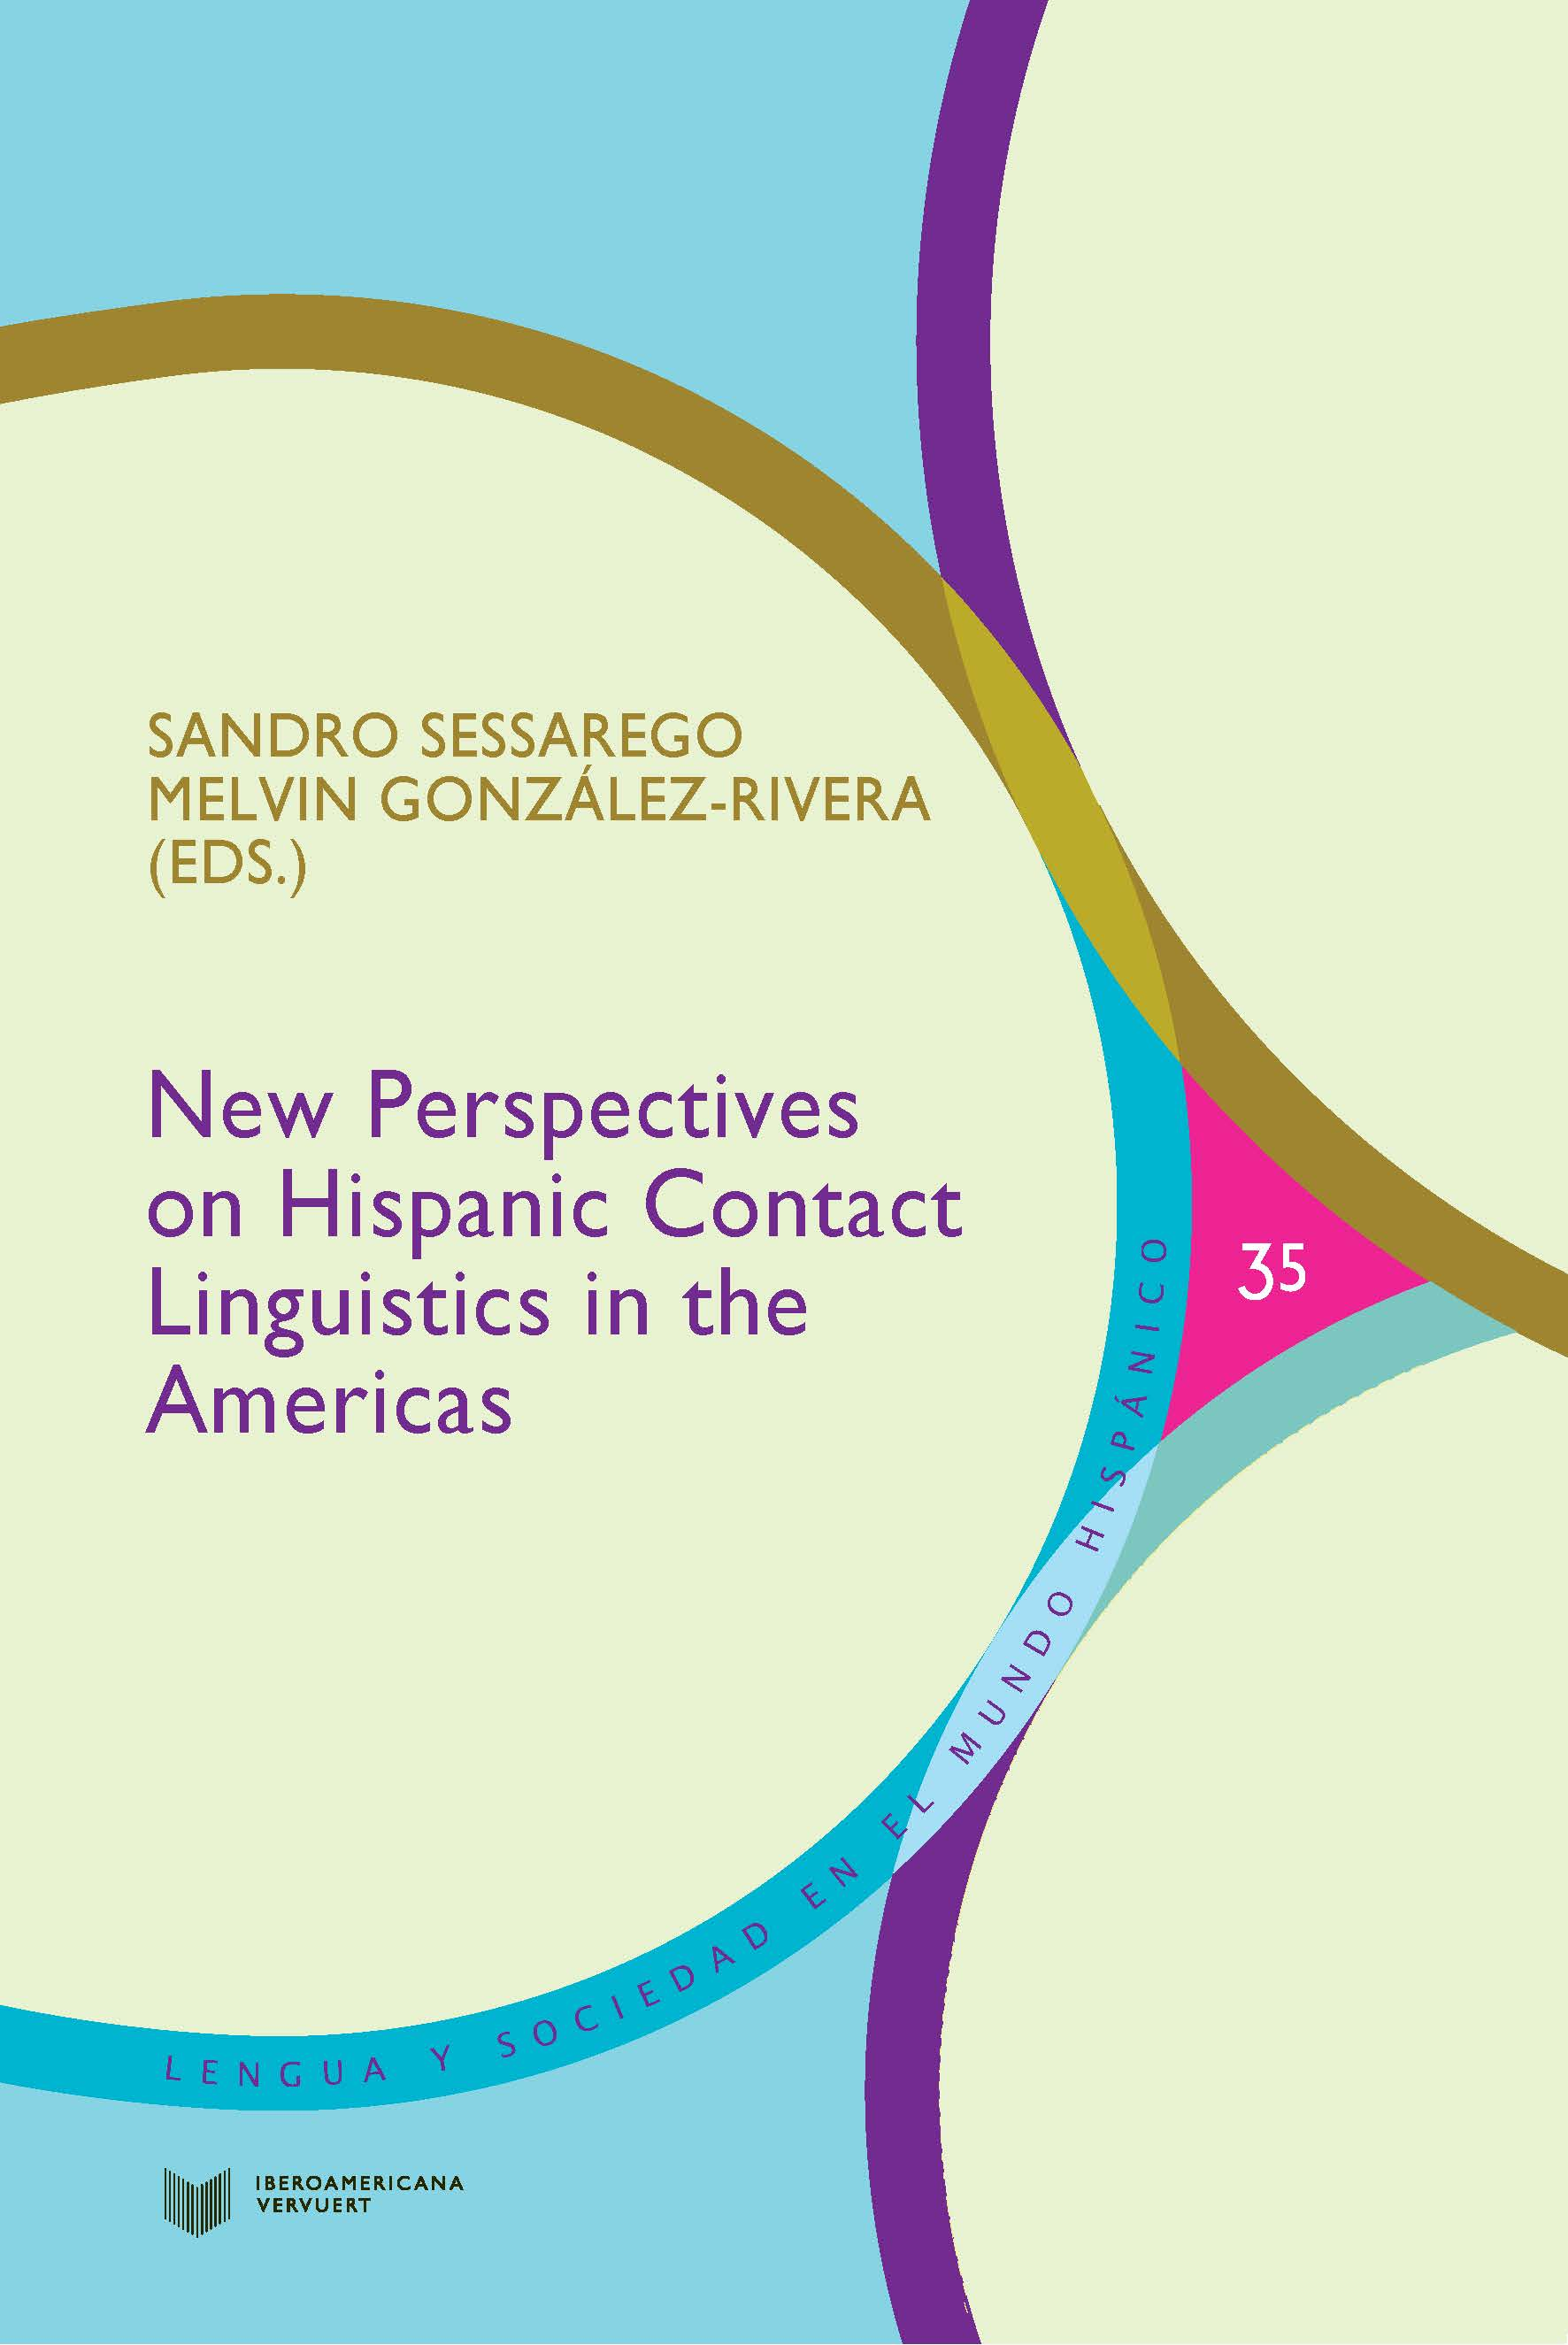 New Perspectives on Hispanic Contact Linguistics in the Americas (9788484898771)